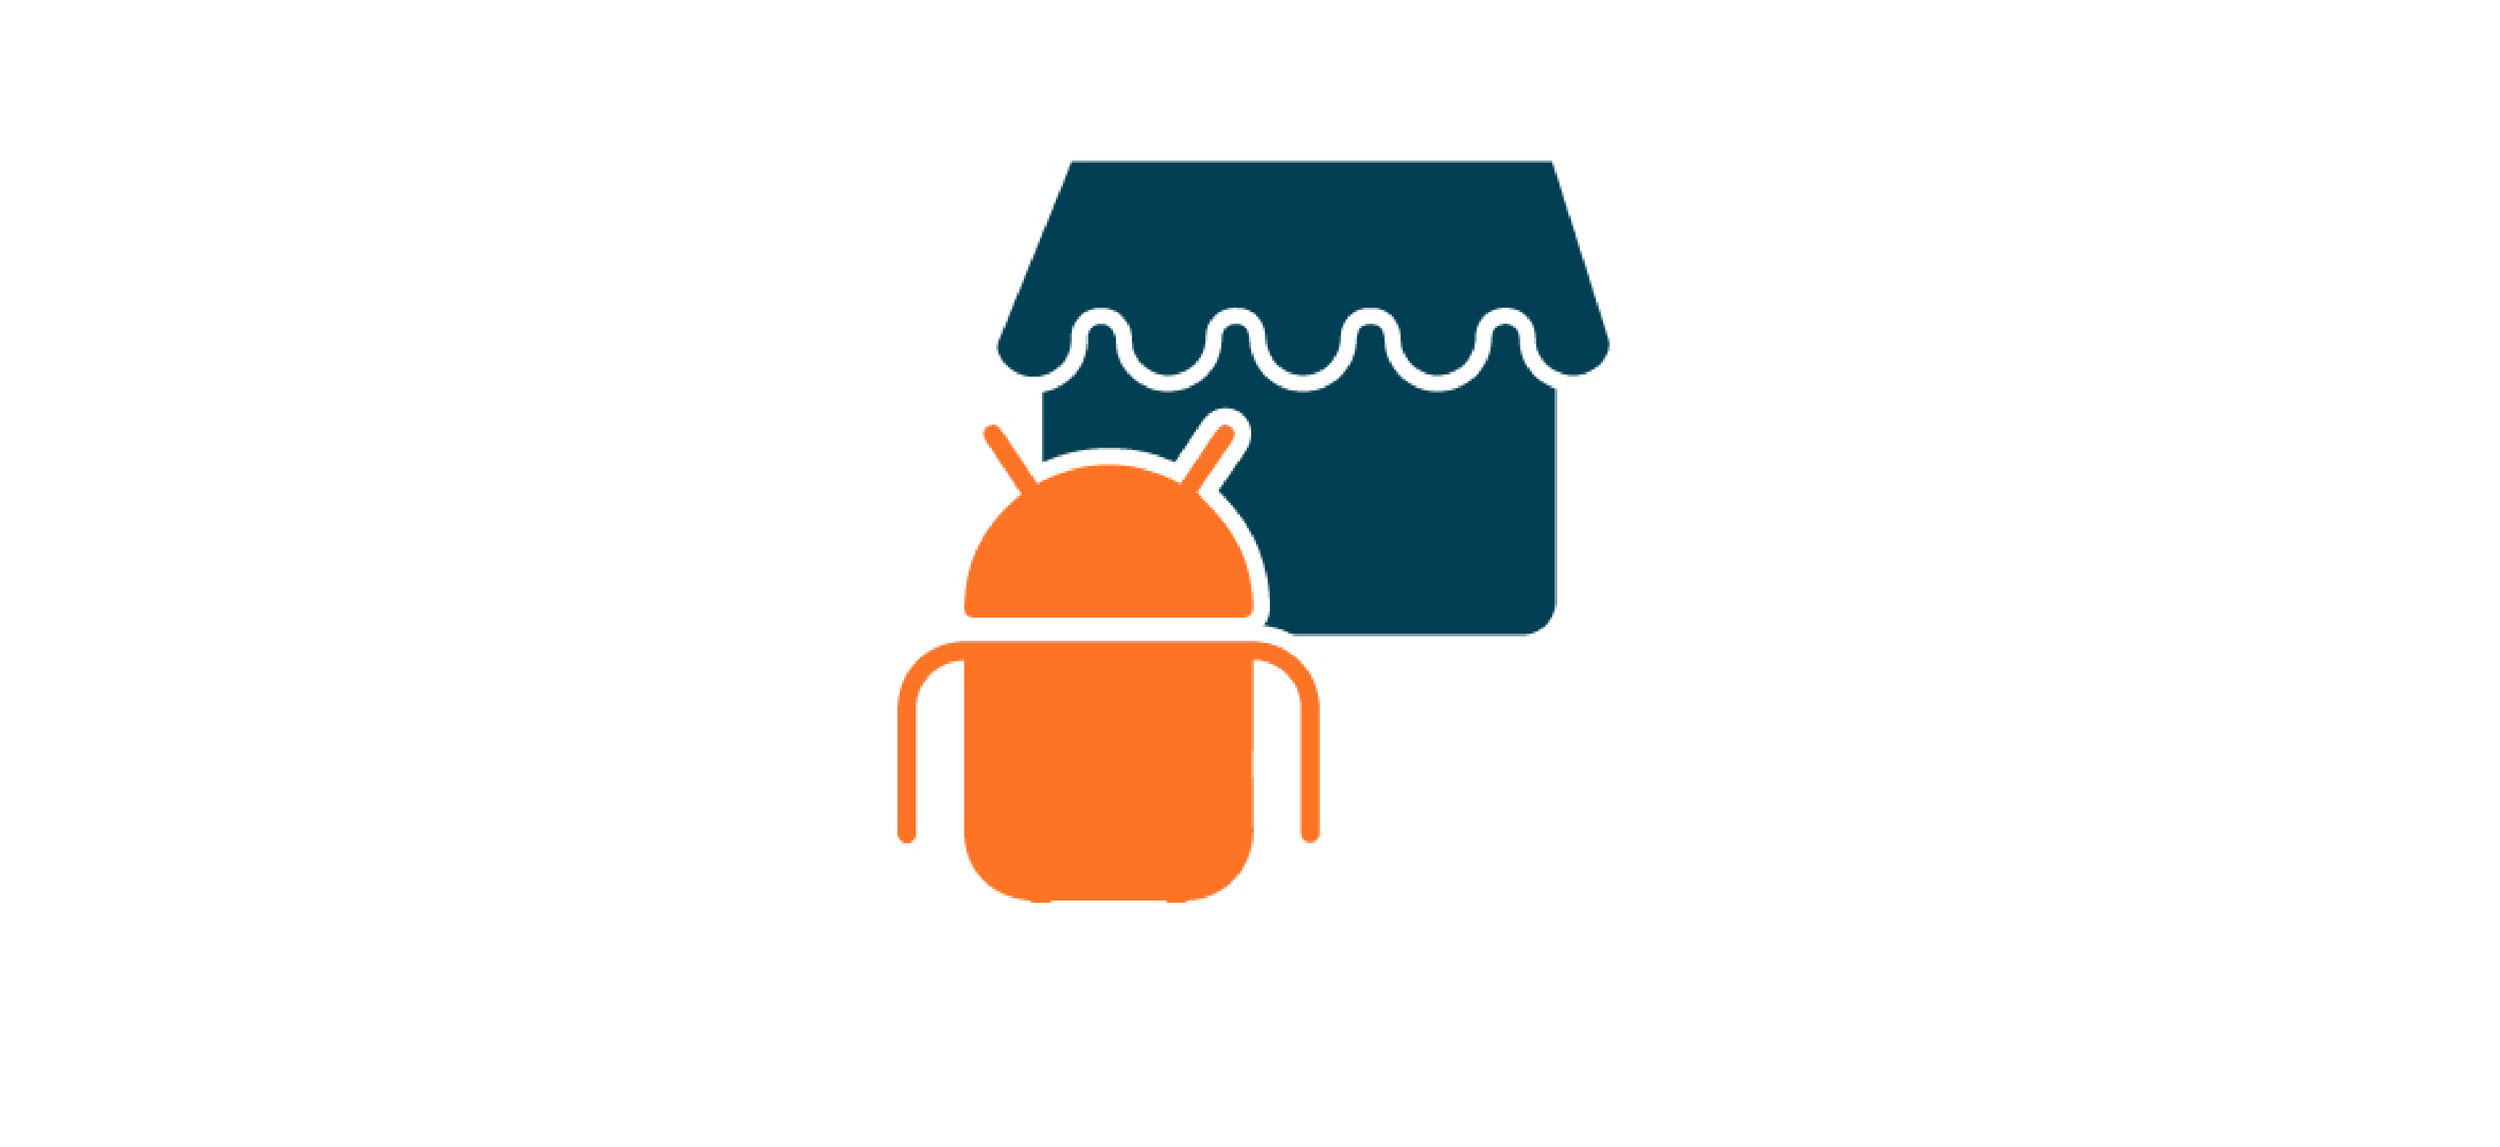 Small Business/Android User  Most of the target users are individual sellers who use Android mobile devices to update inventories instead of using API.